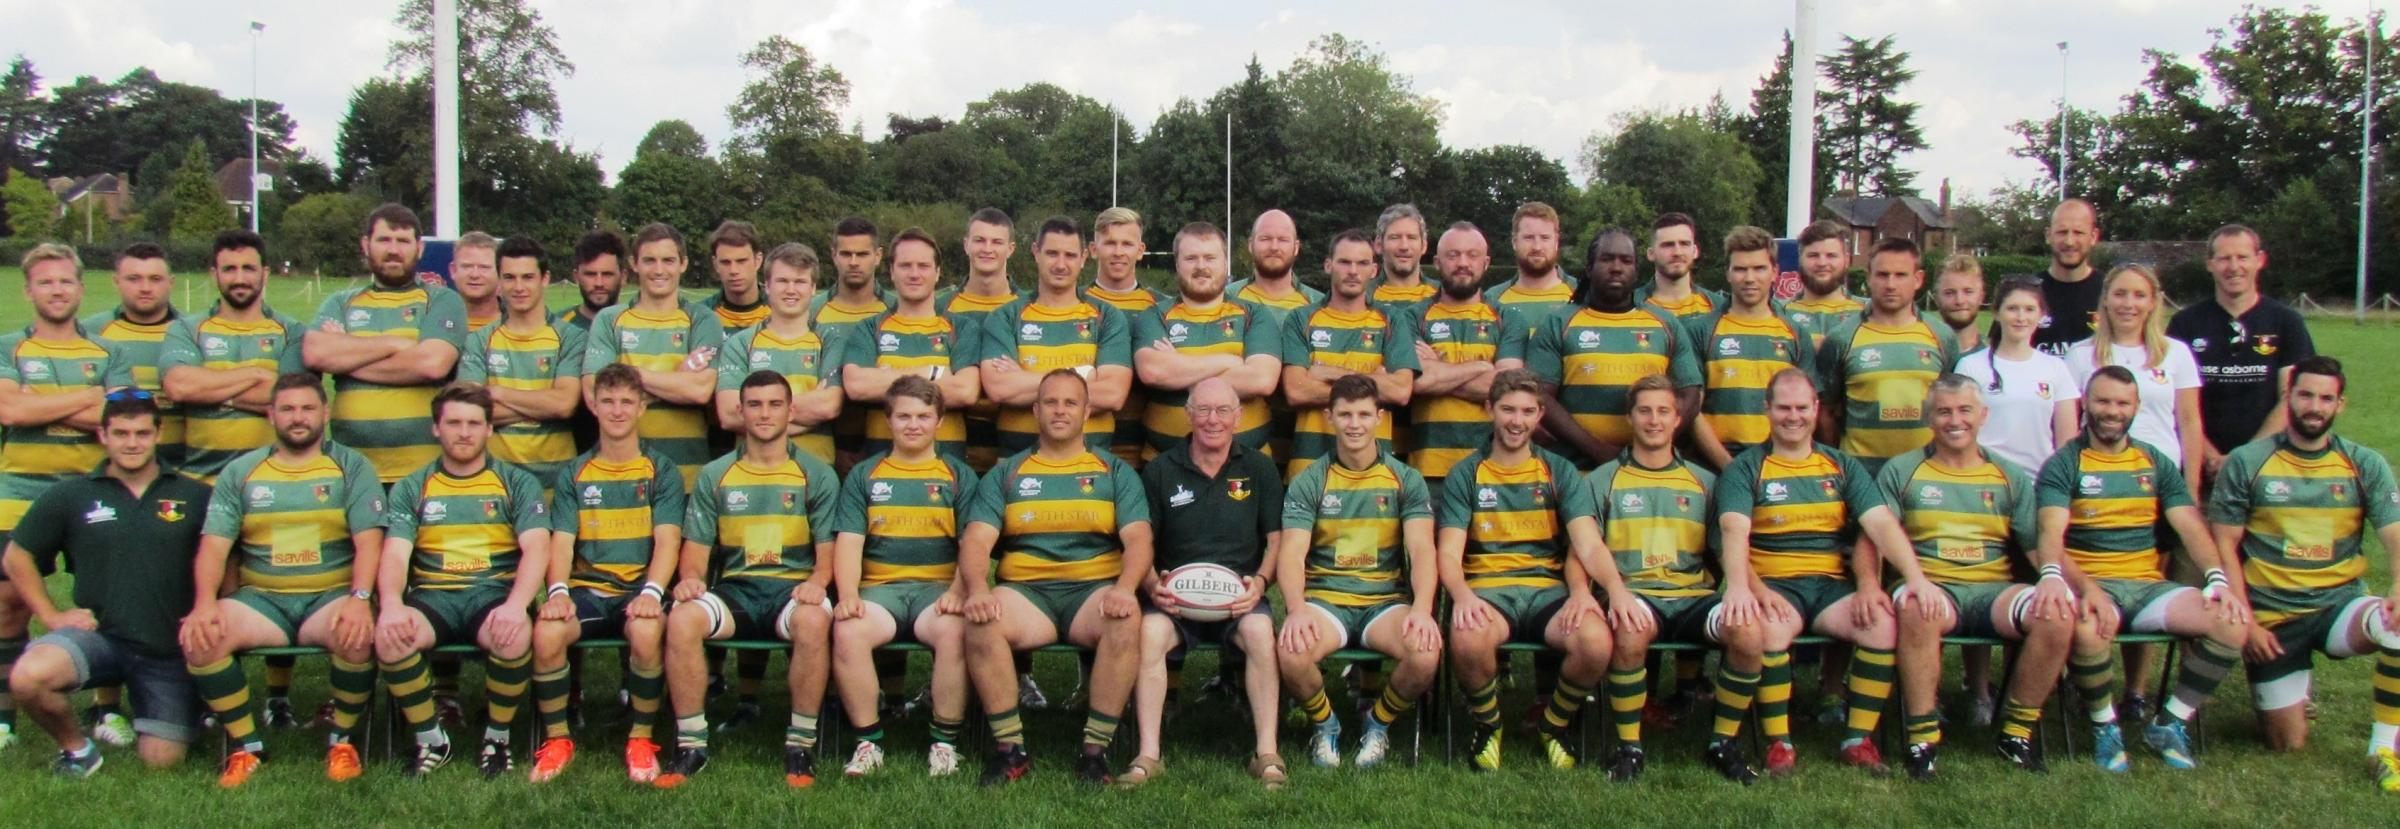 Beaconsfield Rugby Club host a bumper day of rugby